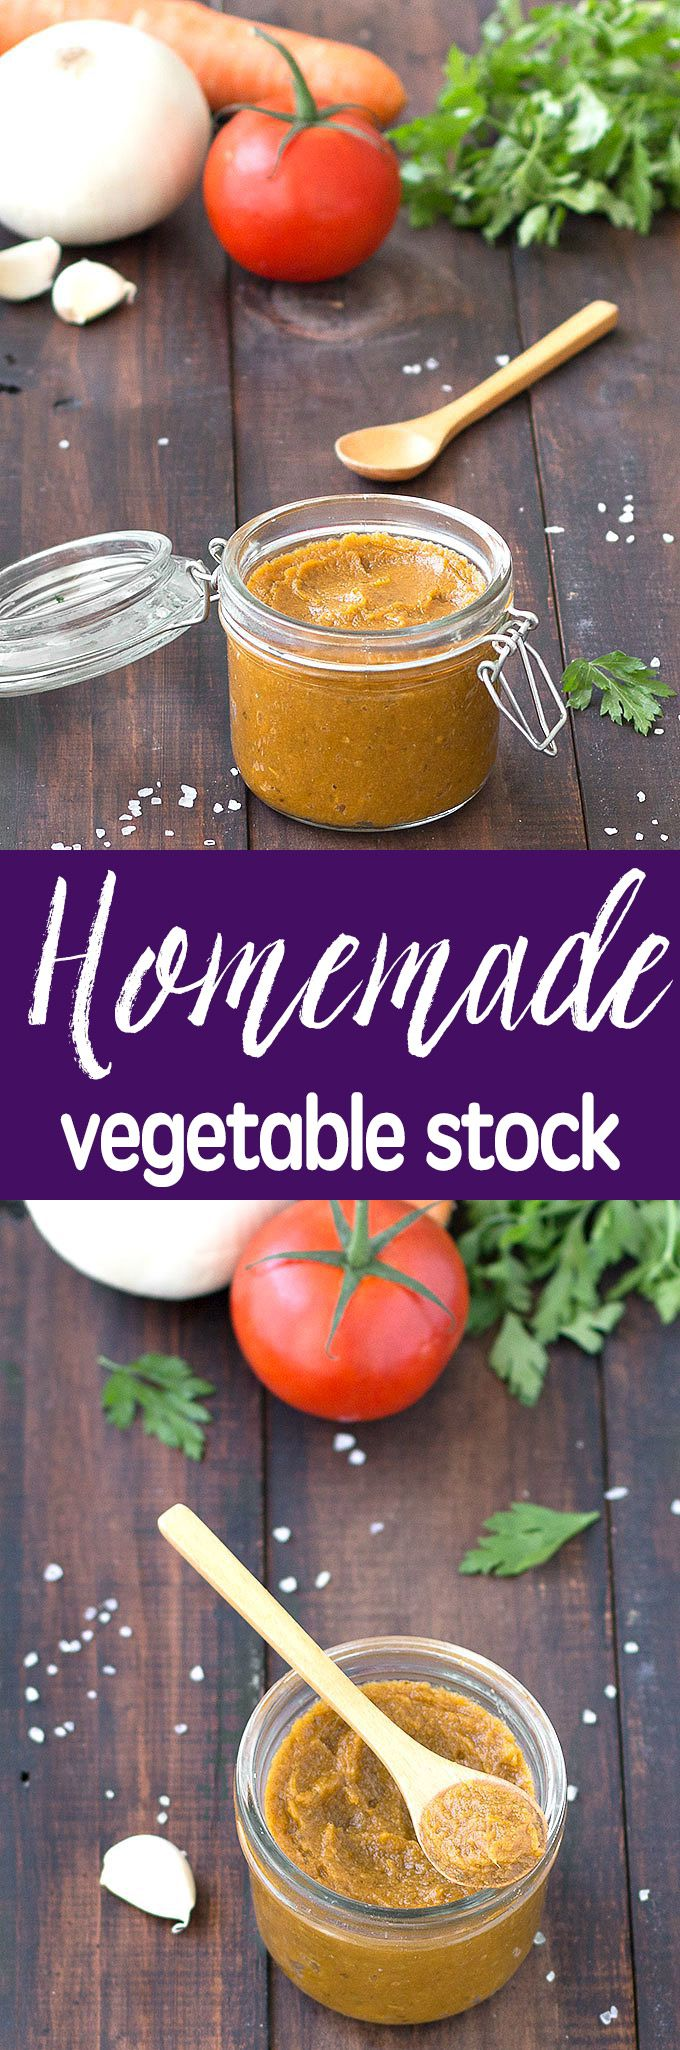 Homemade vegetable stock is so easy to make and add flavor to soups, risotto, stews, and lots of other dishes. It's tastier, healthier and cheaper than the store bought one.